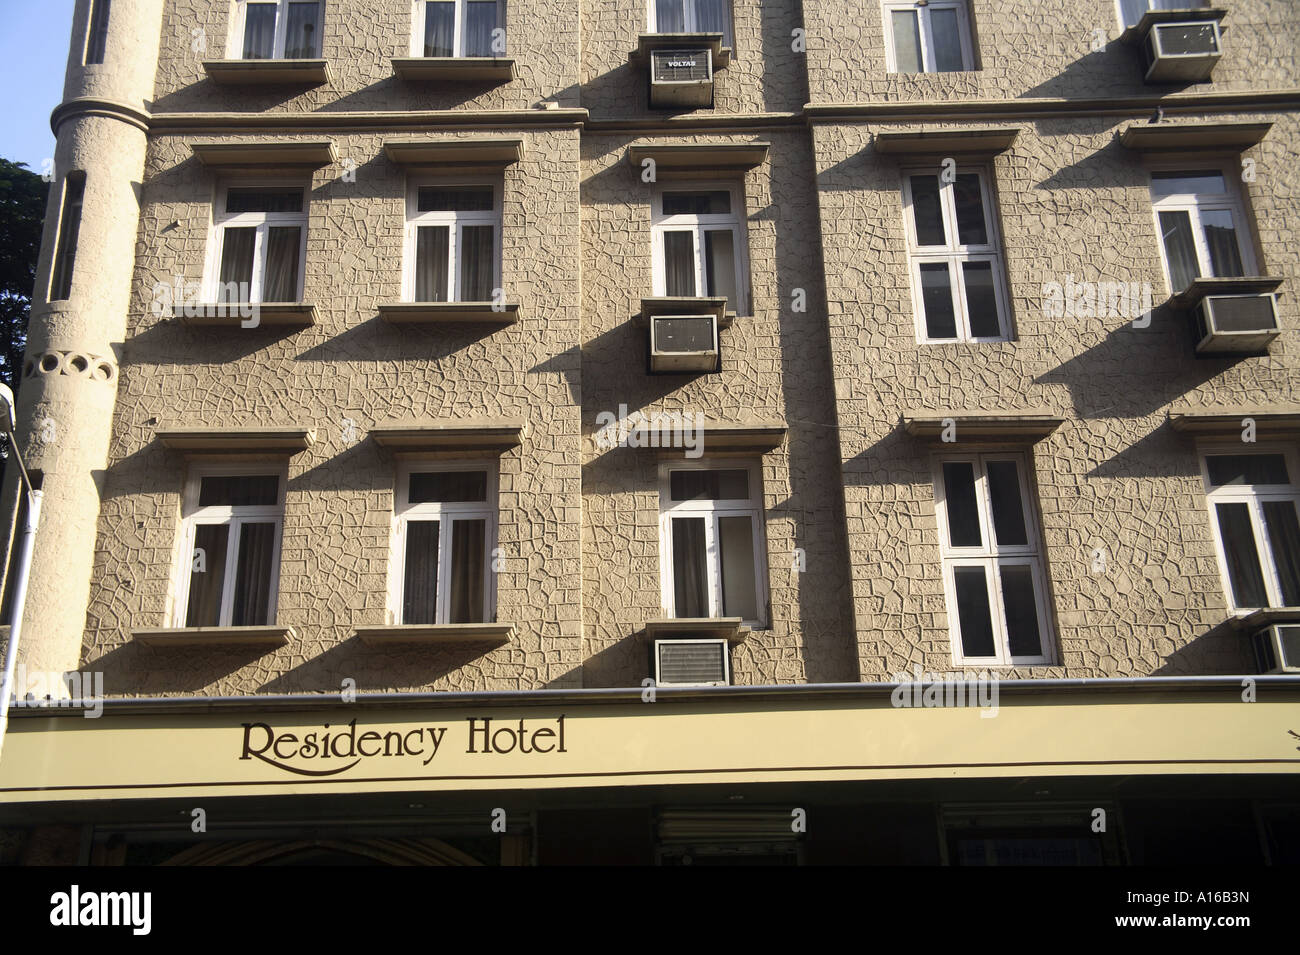 Ten Windows Of Residency Hotel Old British Gothic Architecture On D N Road Near Handloom House Fort Bombay Mumbai India